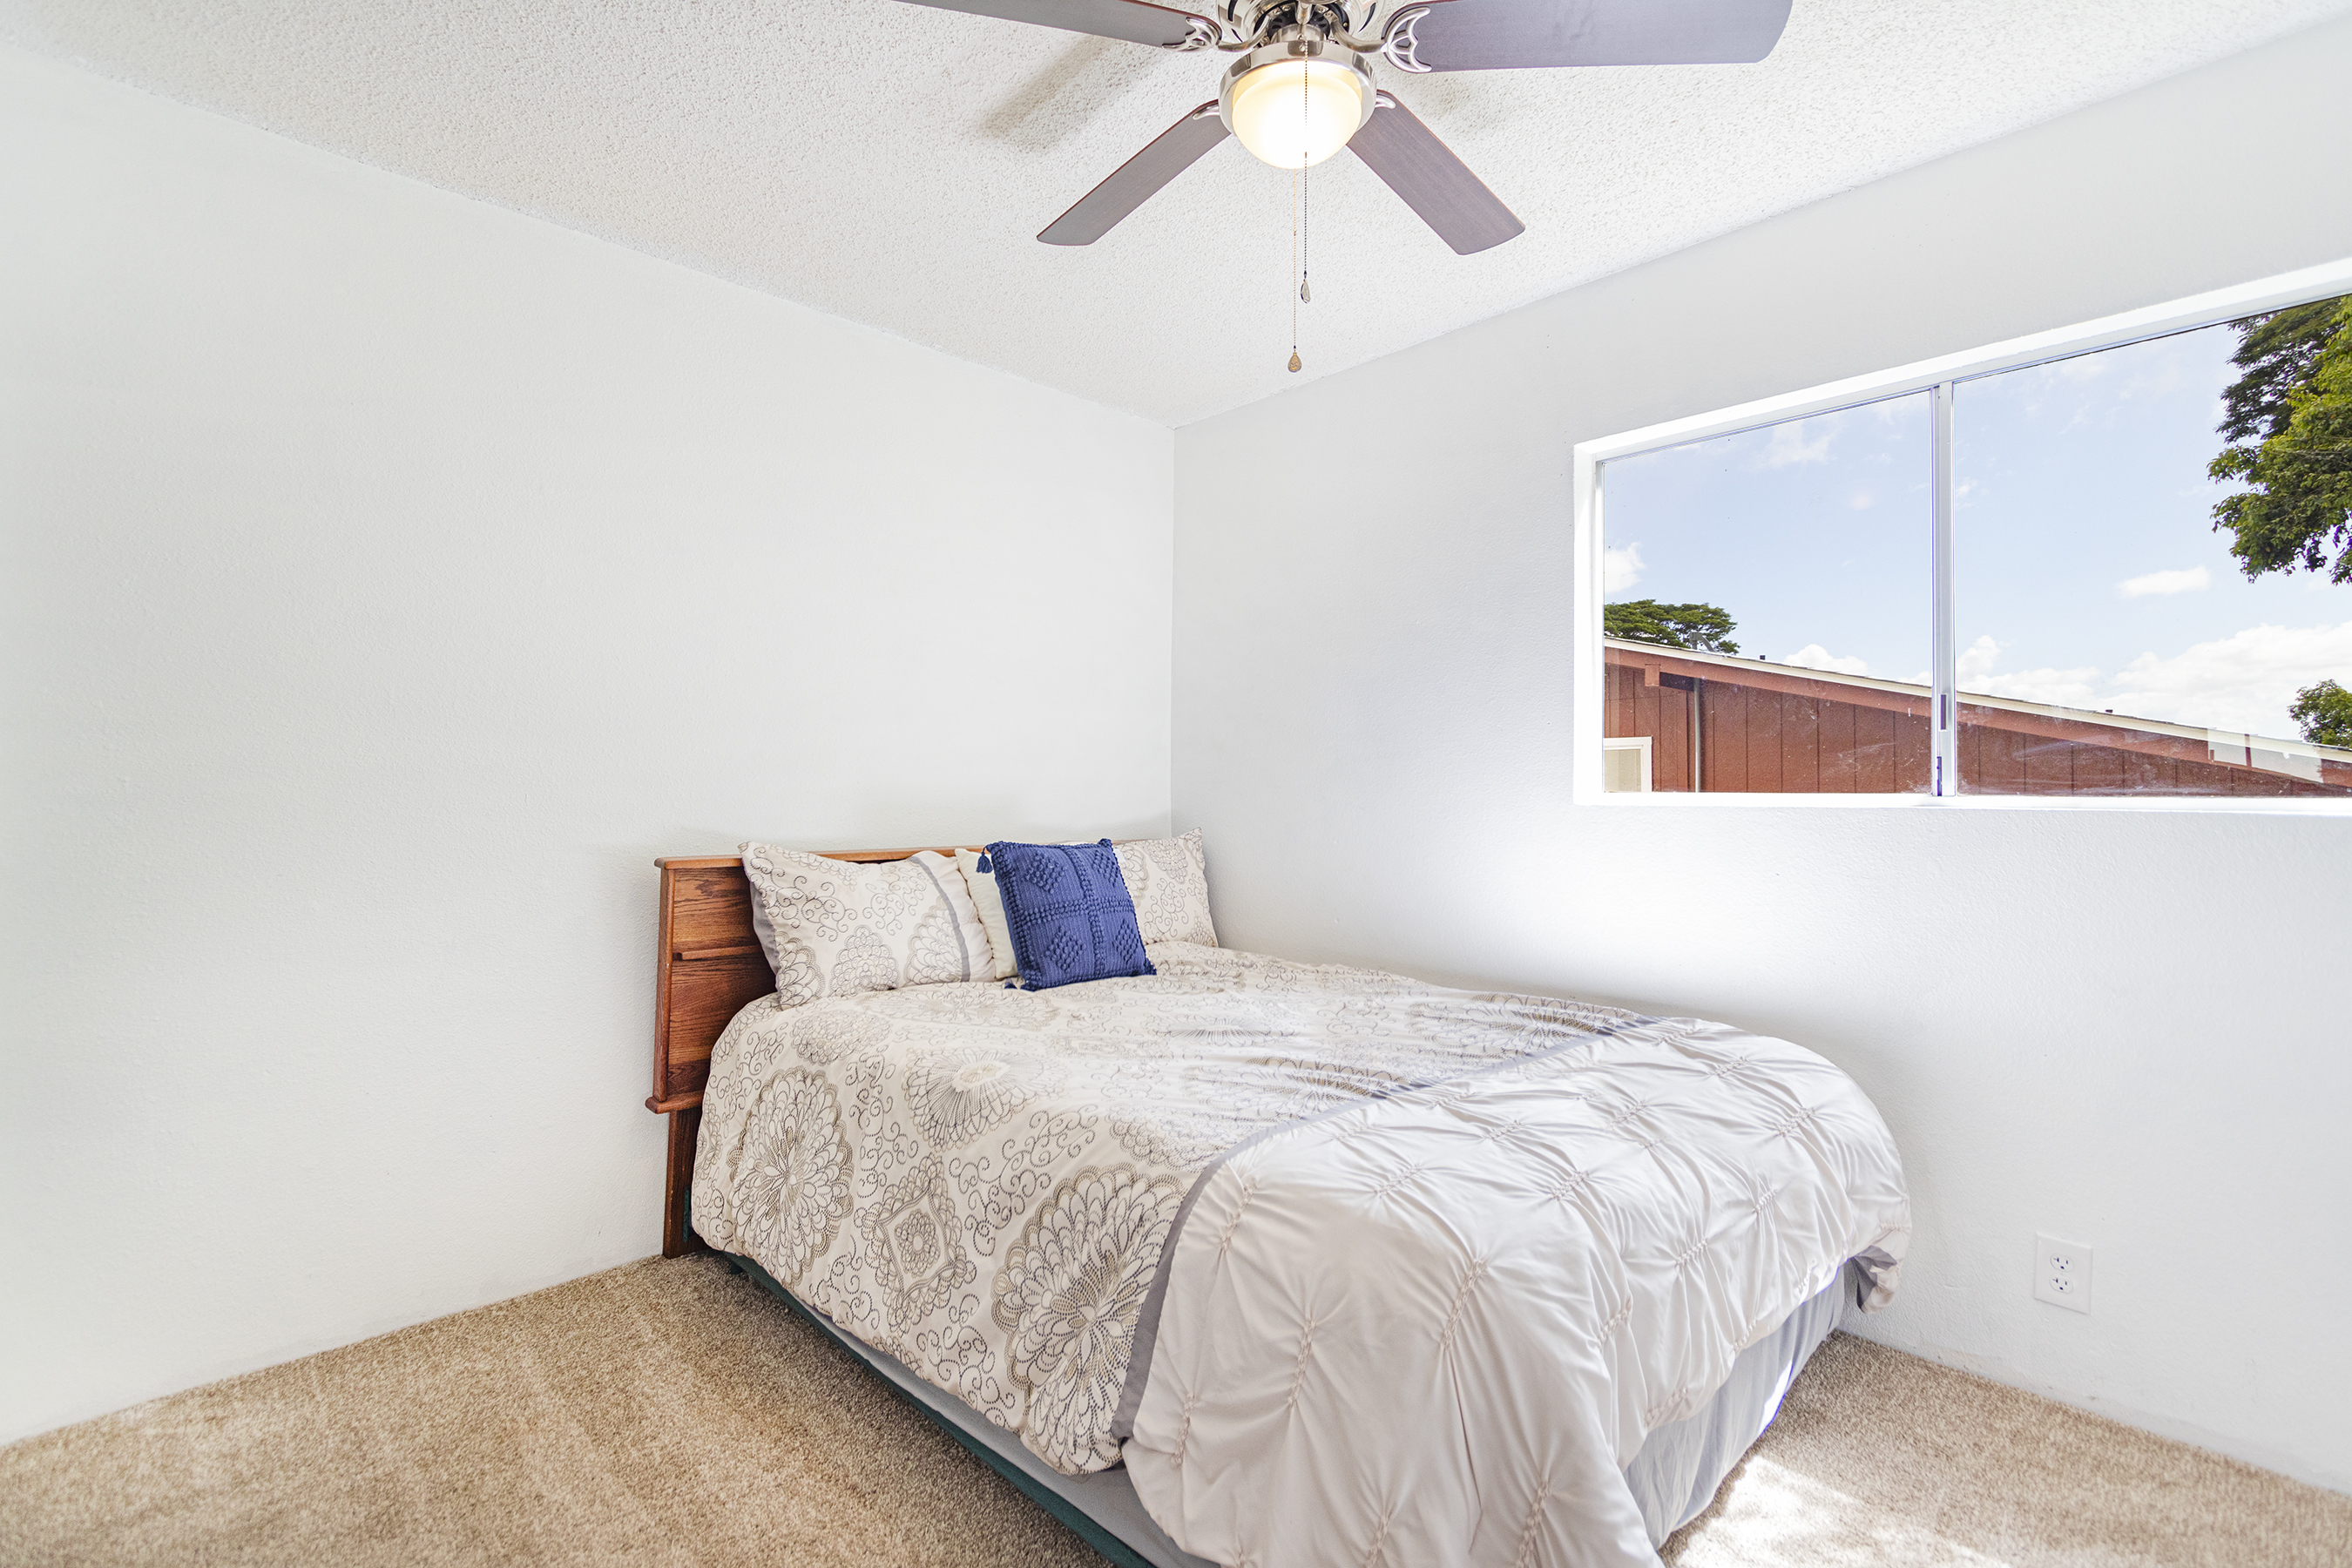 Second Bedroom at 2532 Akepa St, Pearl City